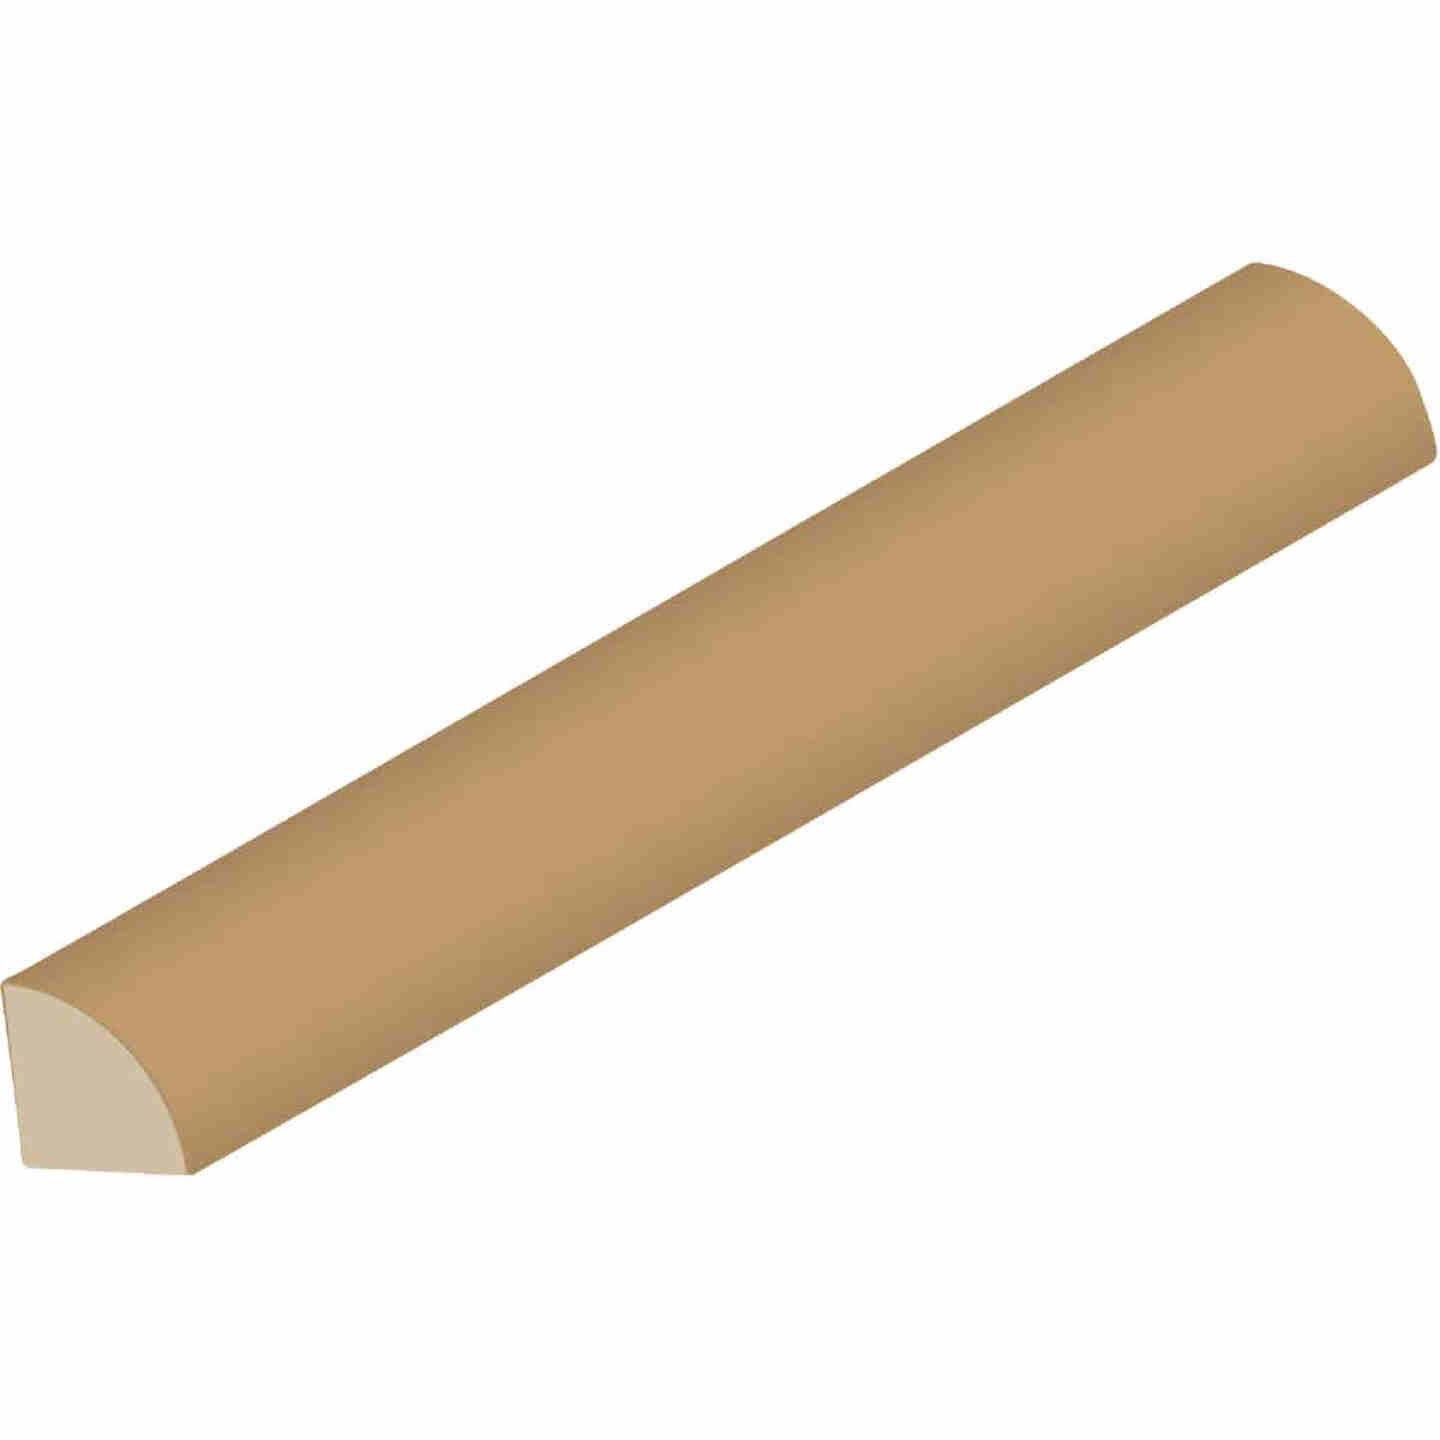 Cedar Creek WM106 Primed 11/16 In. W. x 11/16 In. H. x 96 In. L. Finger Joint Pine Quarter Round Molding Image 1